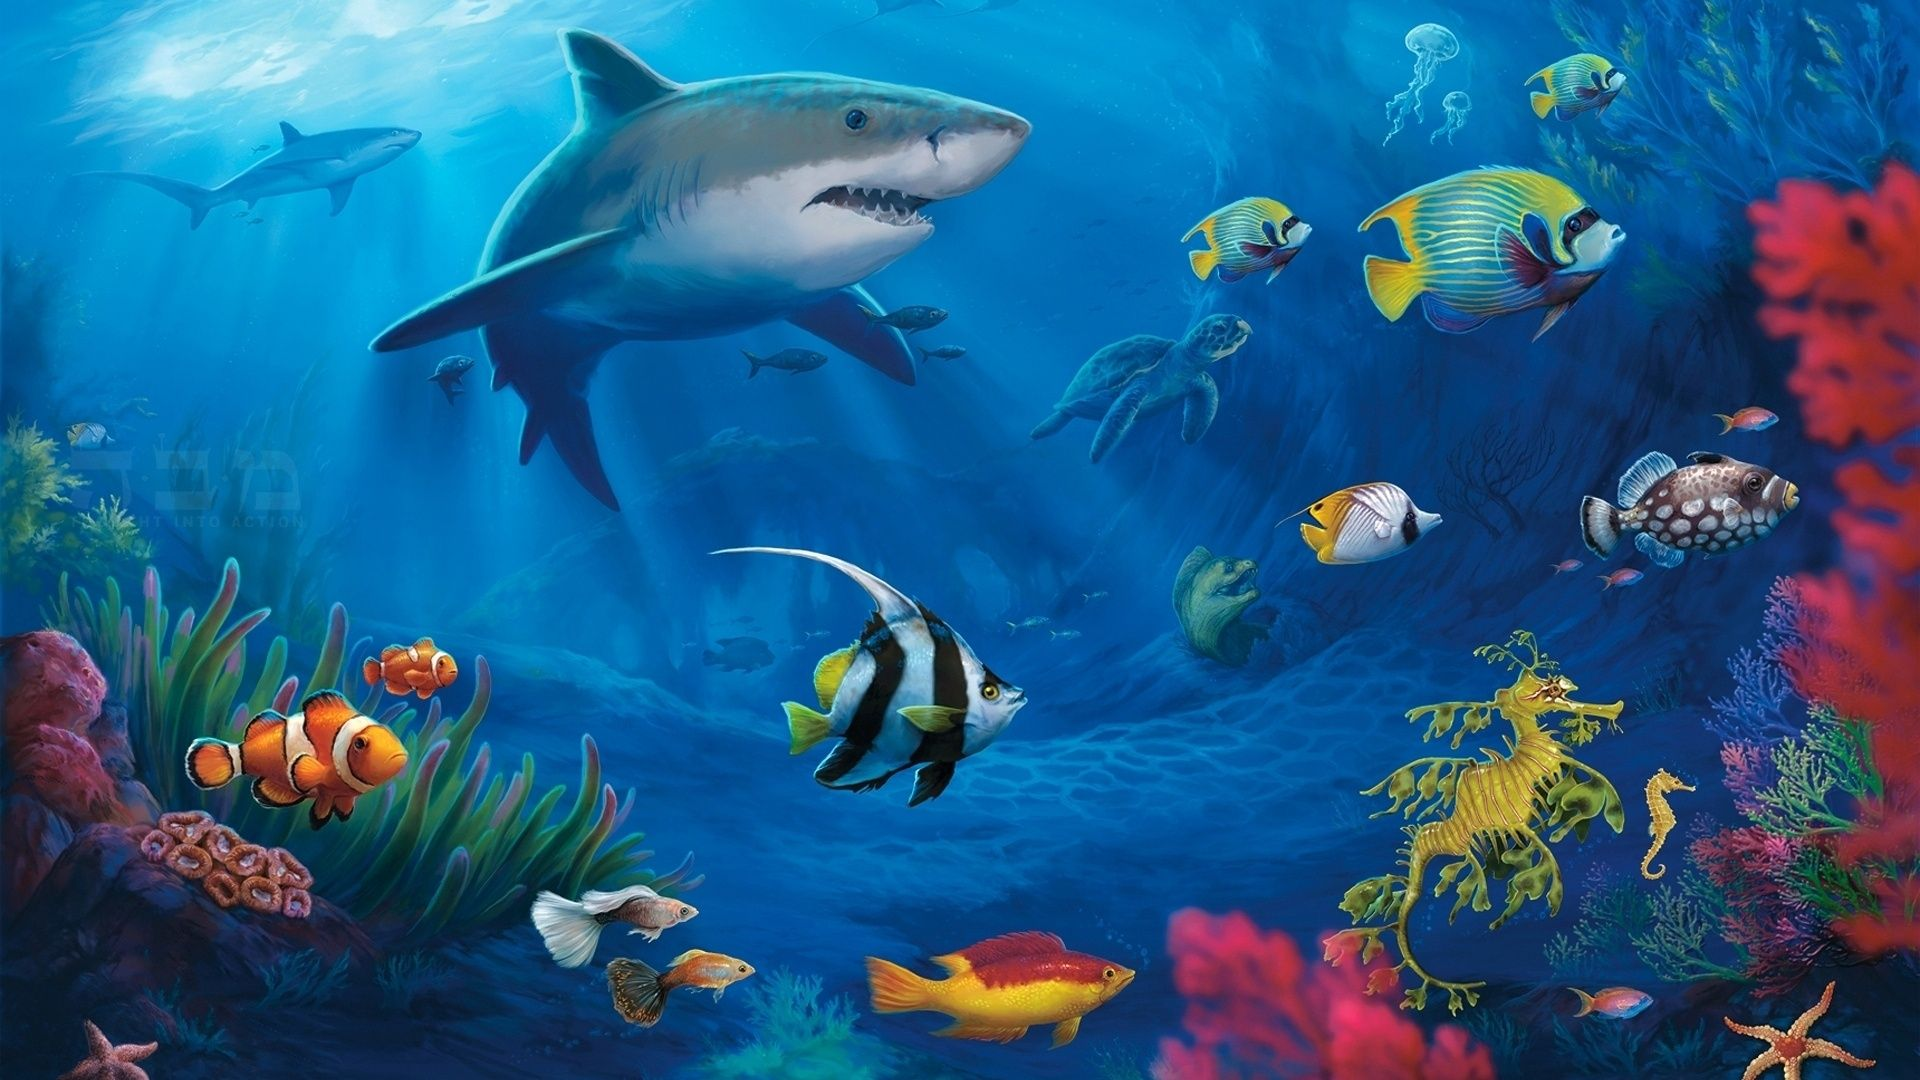 fish live wallpaper for pc 1920x1080. …   live wallpapers   pinte…